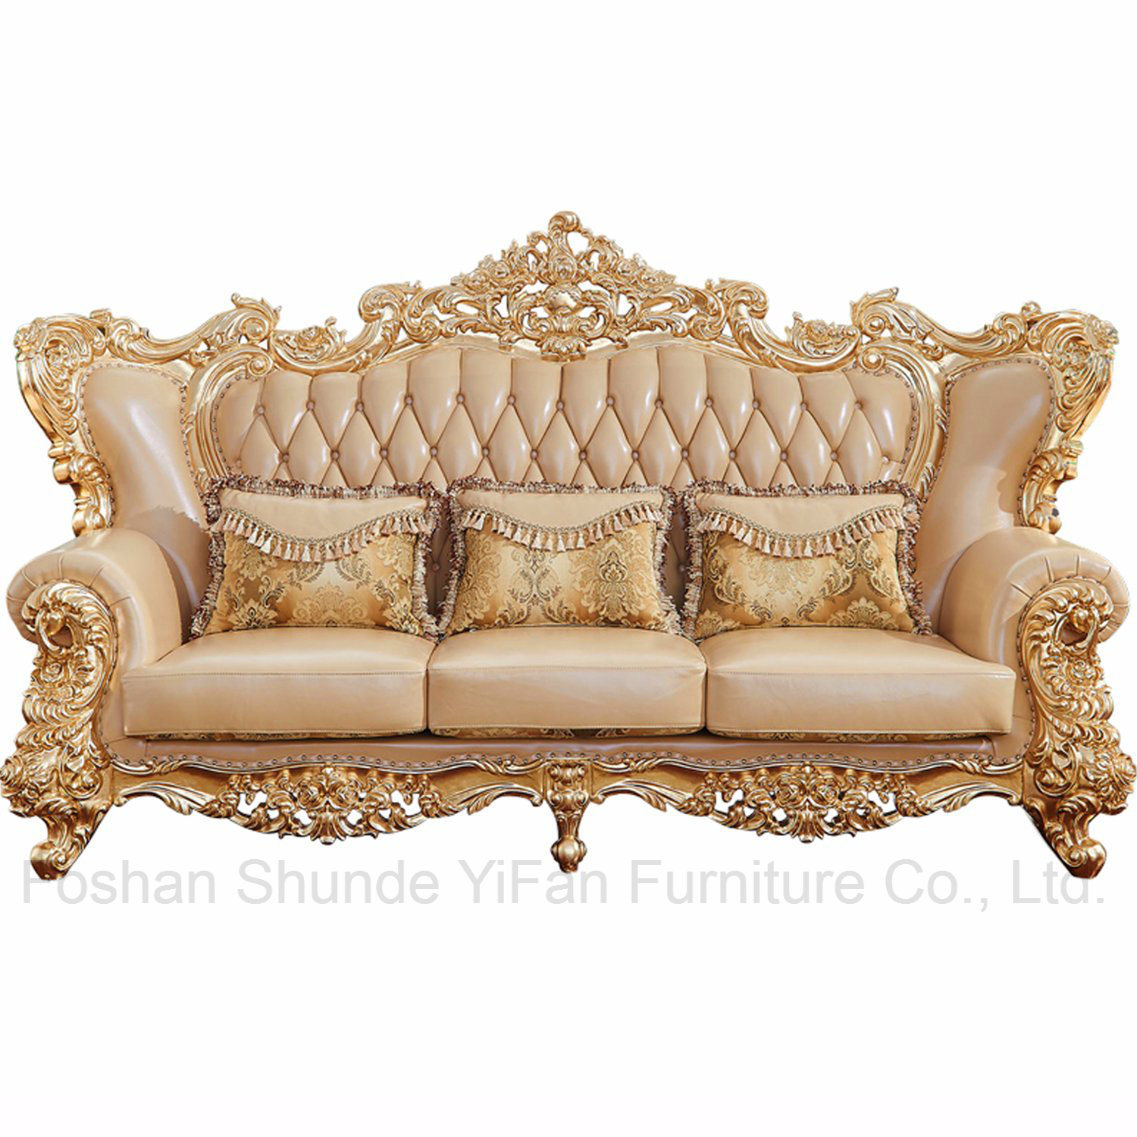 Wood Carved Clic Leather Sofa